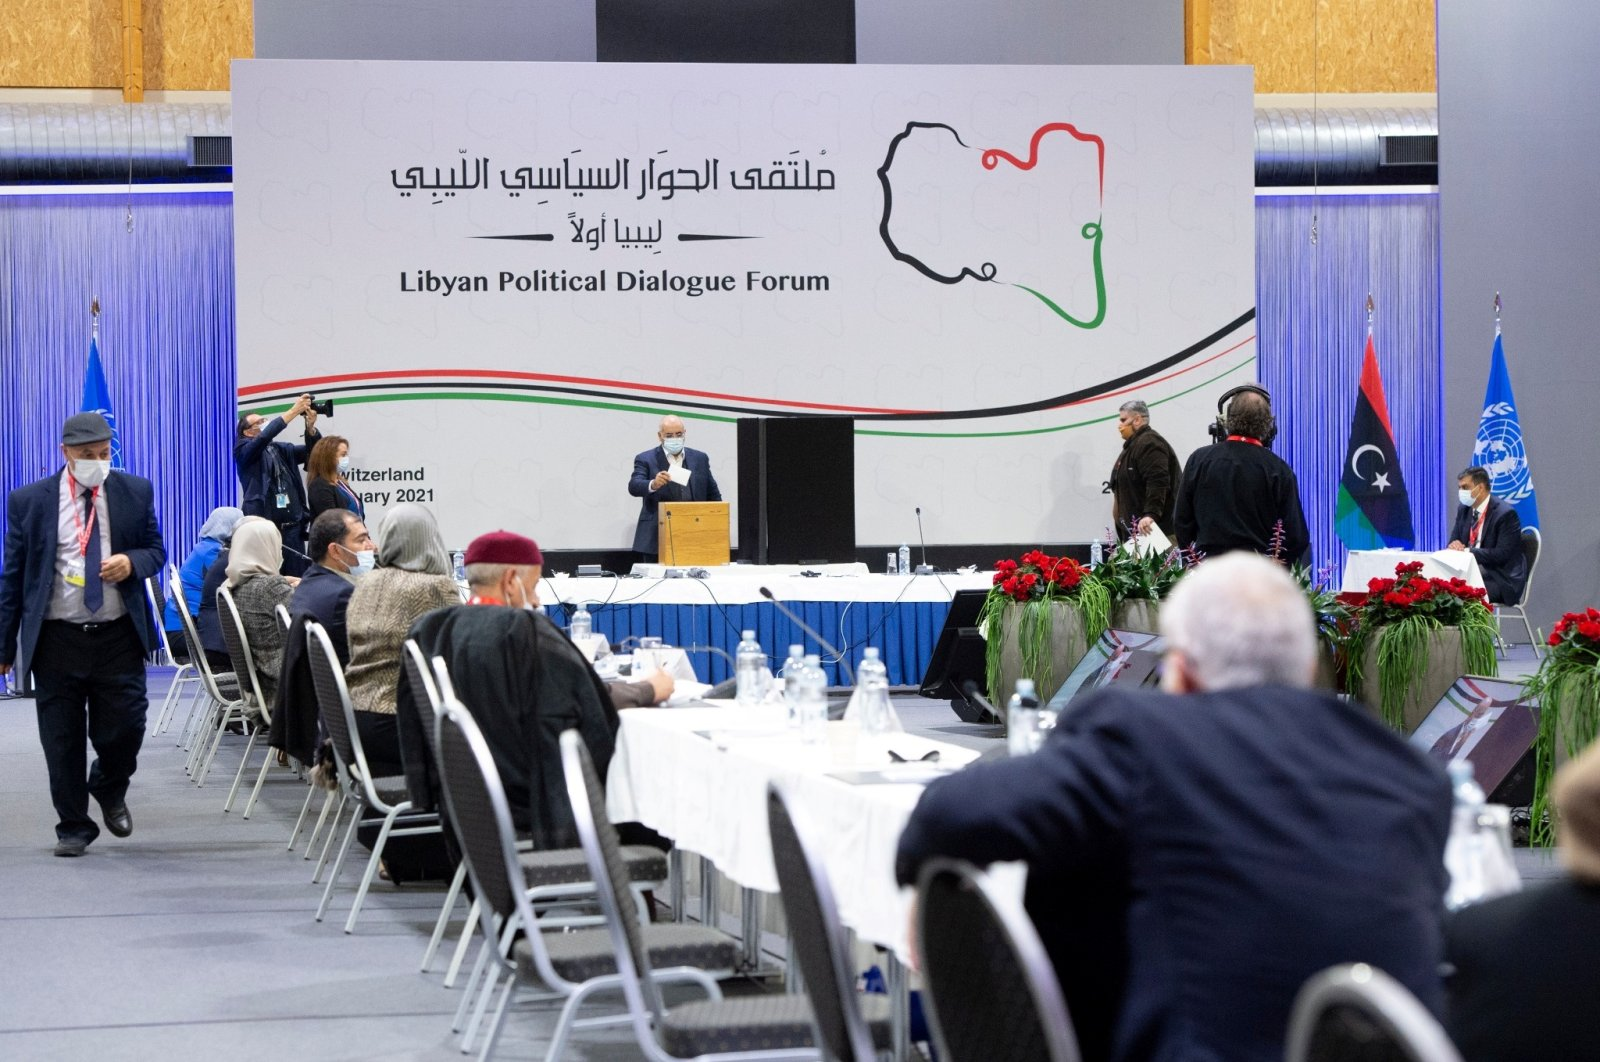 Delegates cast their vote for the election of a new interim government for Libya during the Libyan Political Dialogue Forum in Chavannes-de-Bogis near Geneva, Switzerland, Feb. 5, 2021. (Reuters Photo)